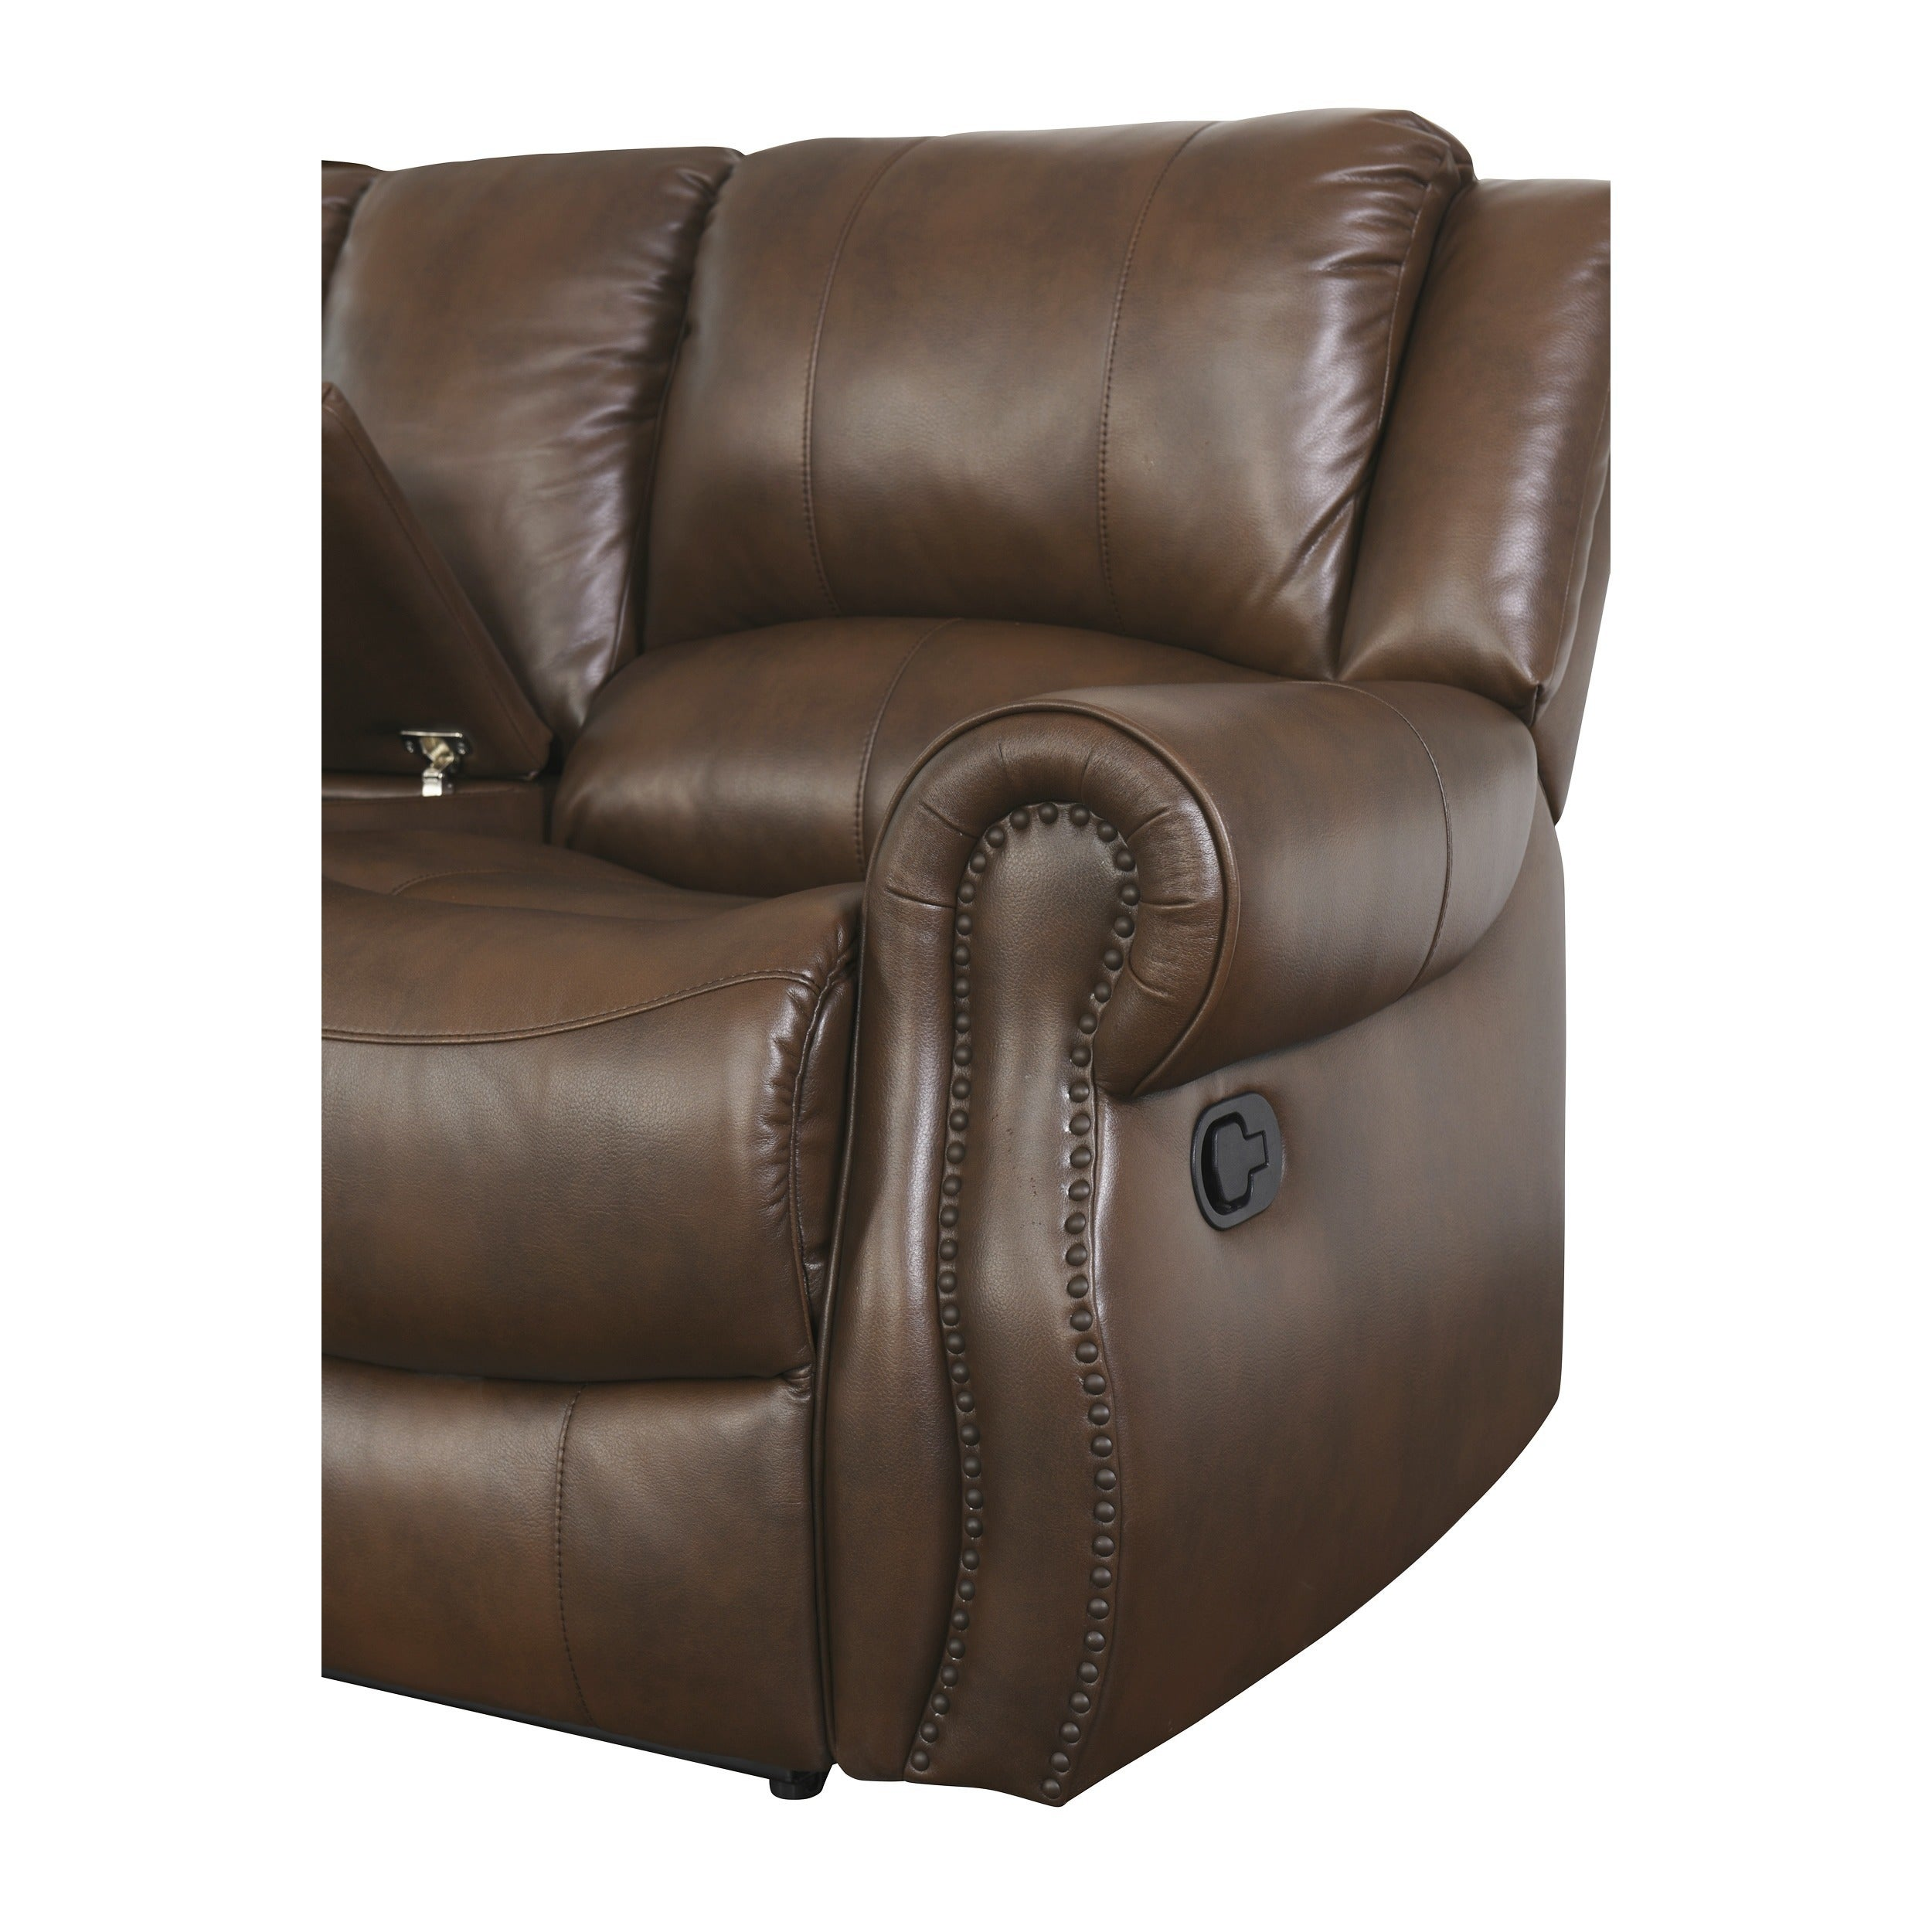 Abbyson Calabasas Mesa Brown Reclining Sofa Free Shipping Today  ~ Recliner Leather Sofa Deals